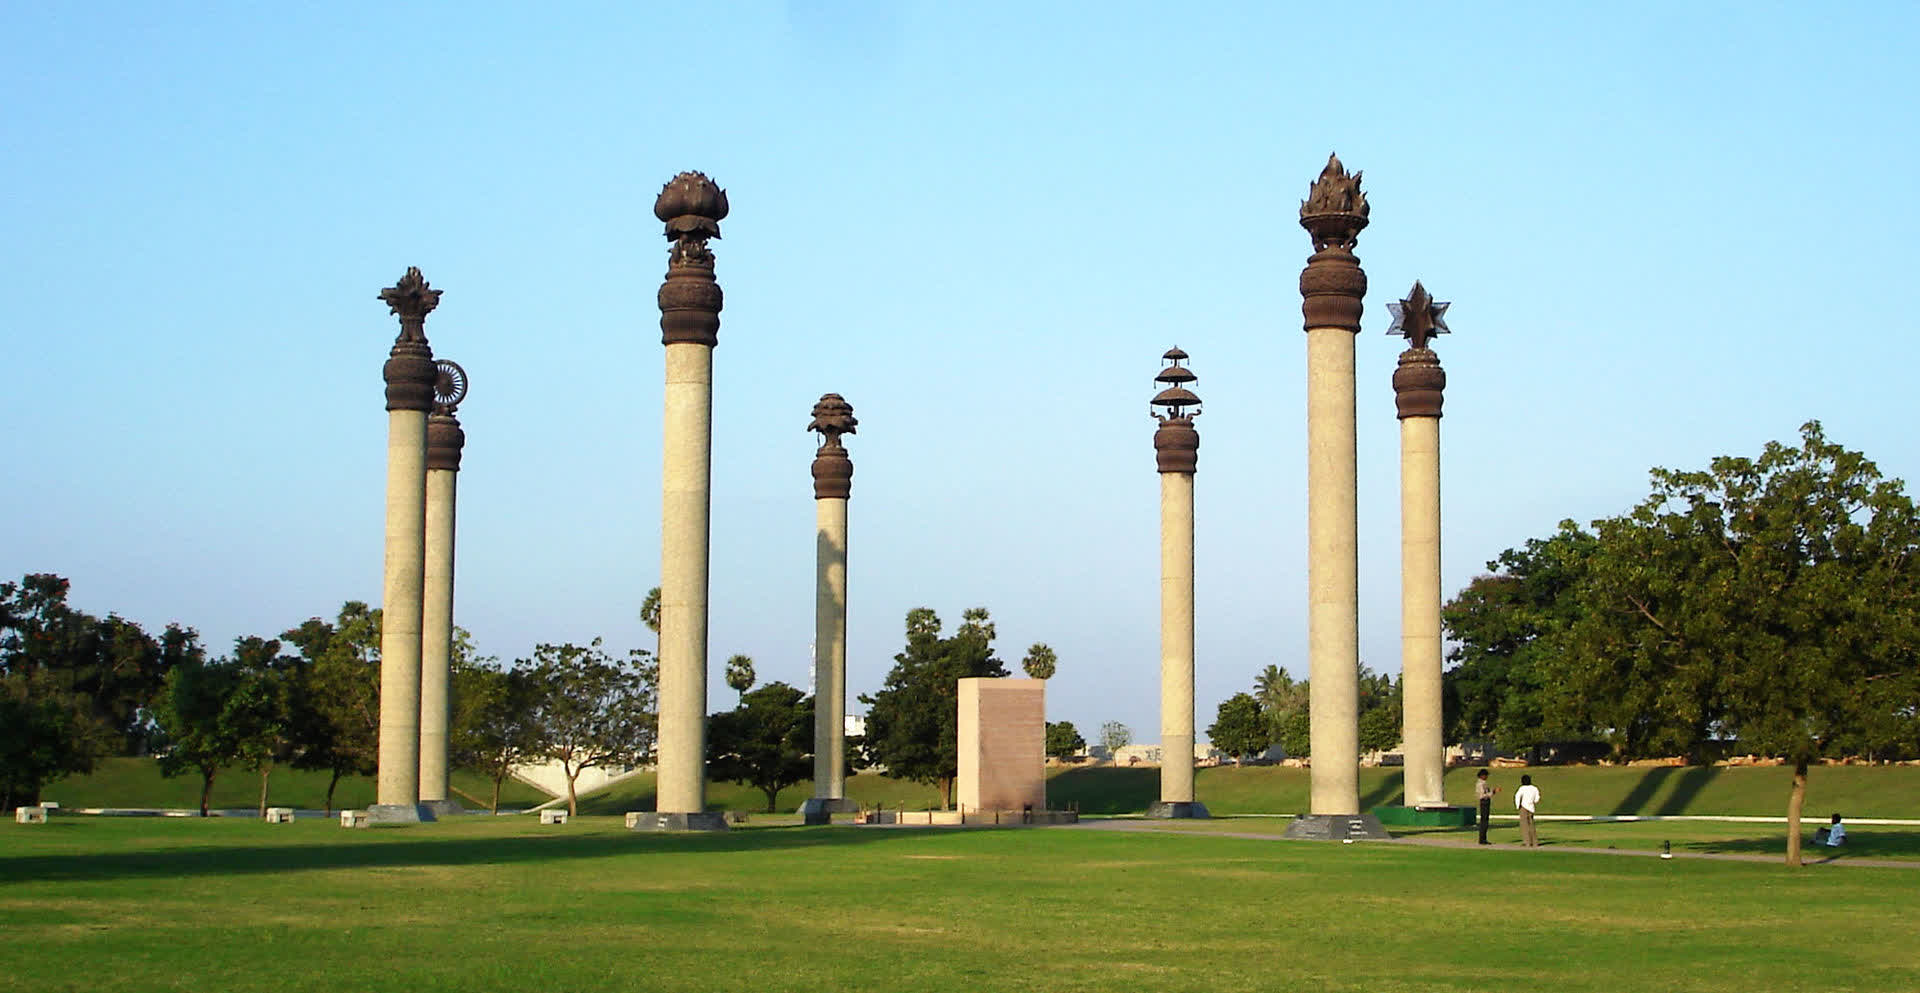 Seven pillars, each featuring a human value surrounds the site of the blast at the Rajiv Gandhi Memorial in Sriperumbudur